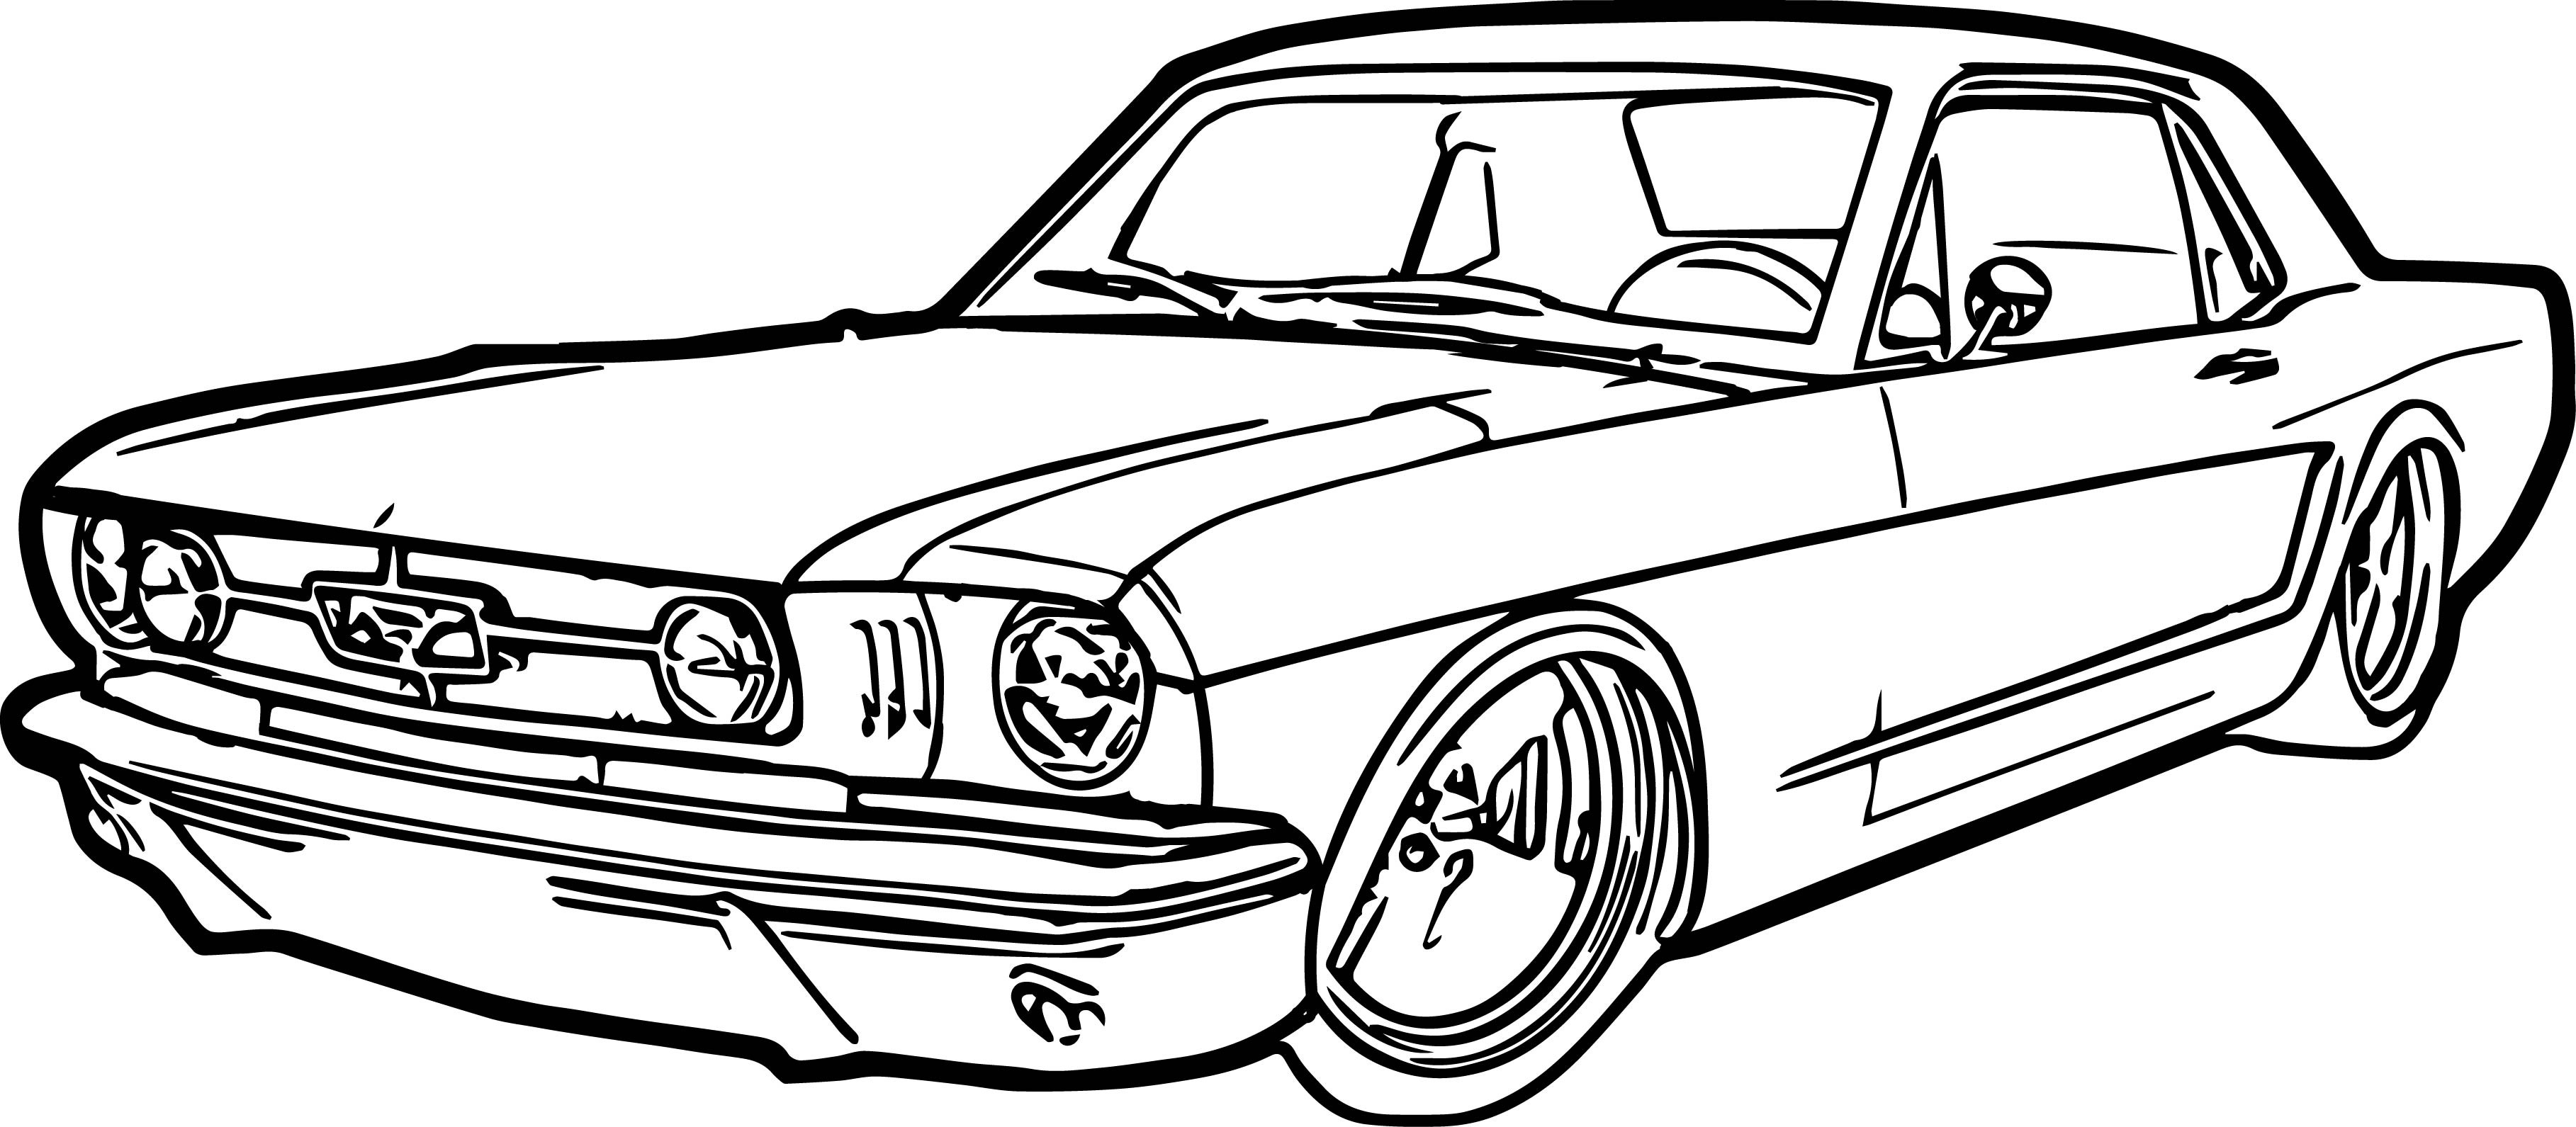 3635x1591 Simple Race Car Coloring Pages New Car Coloring Pages Simple Car